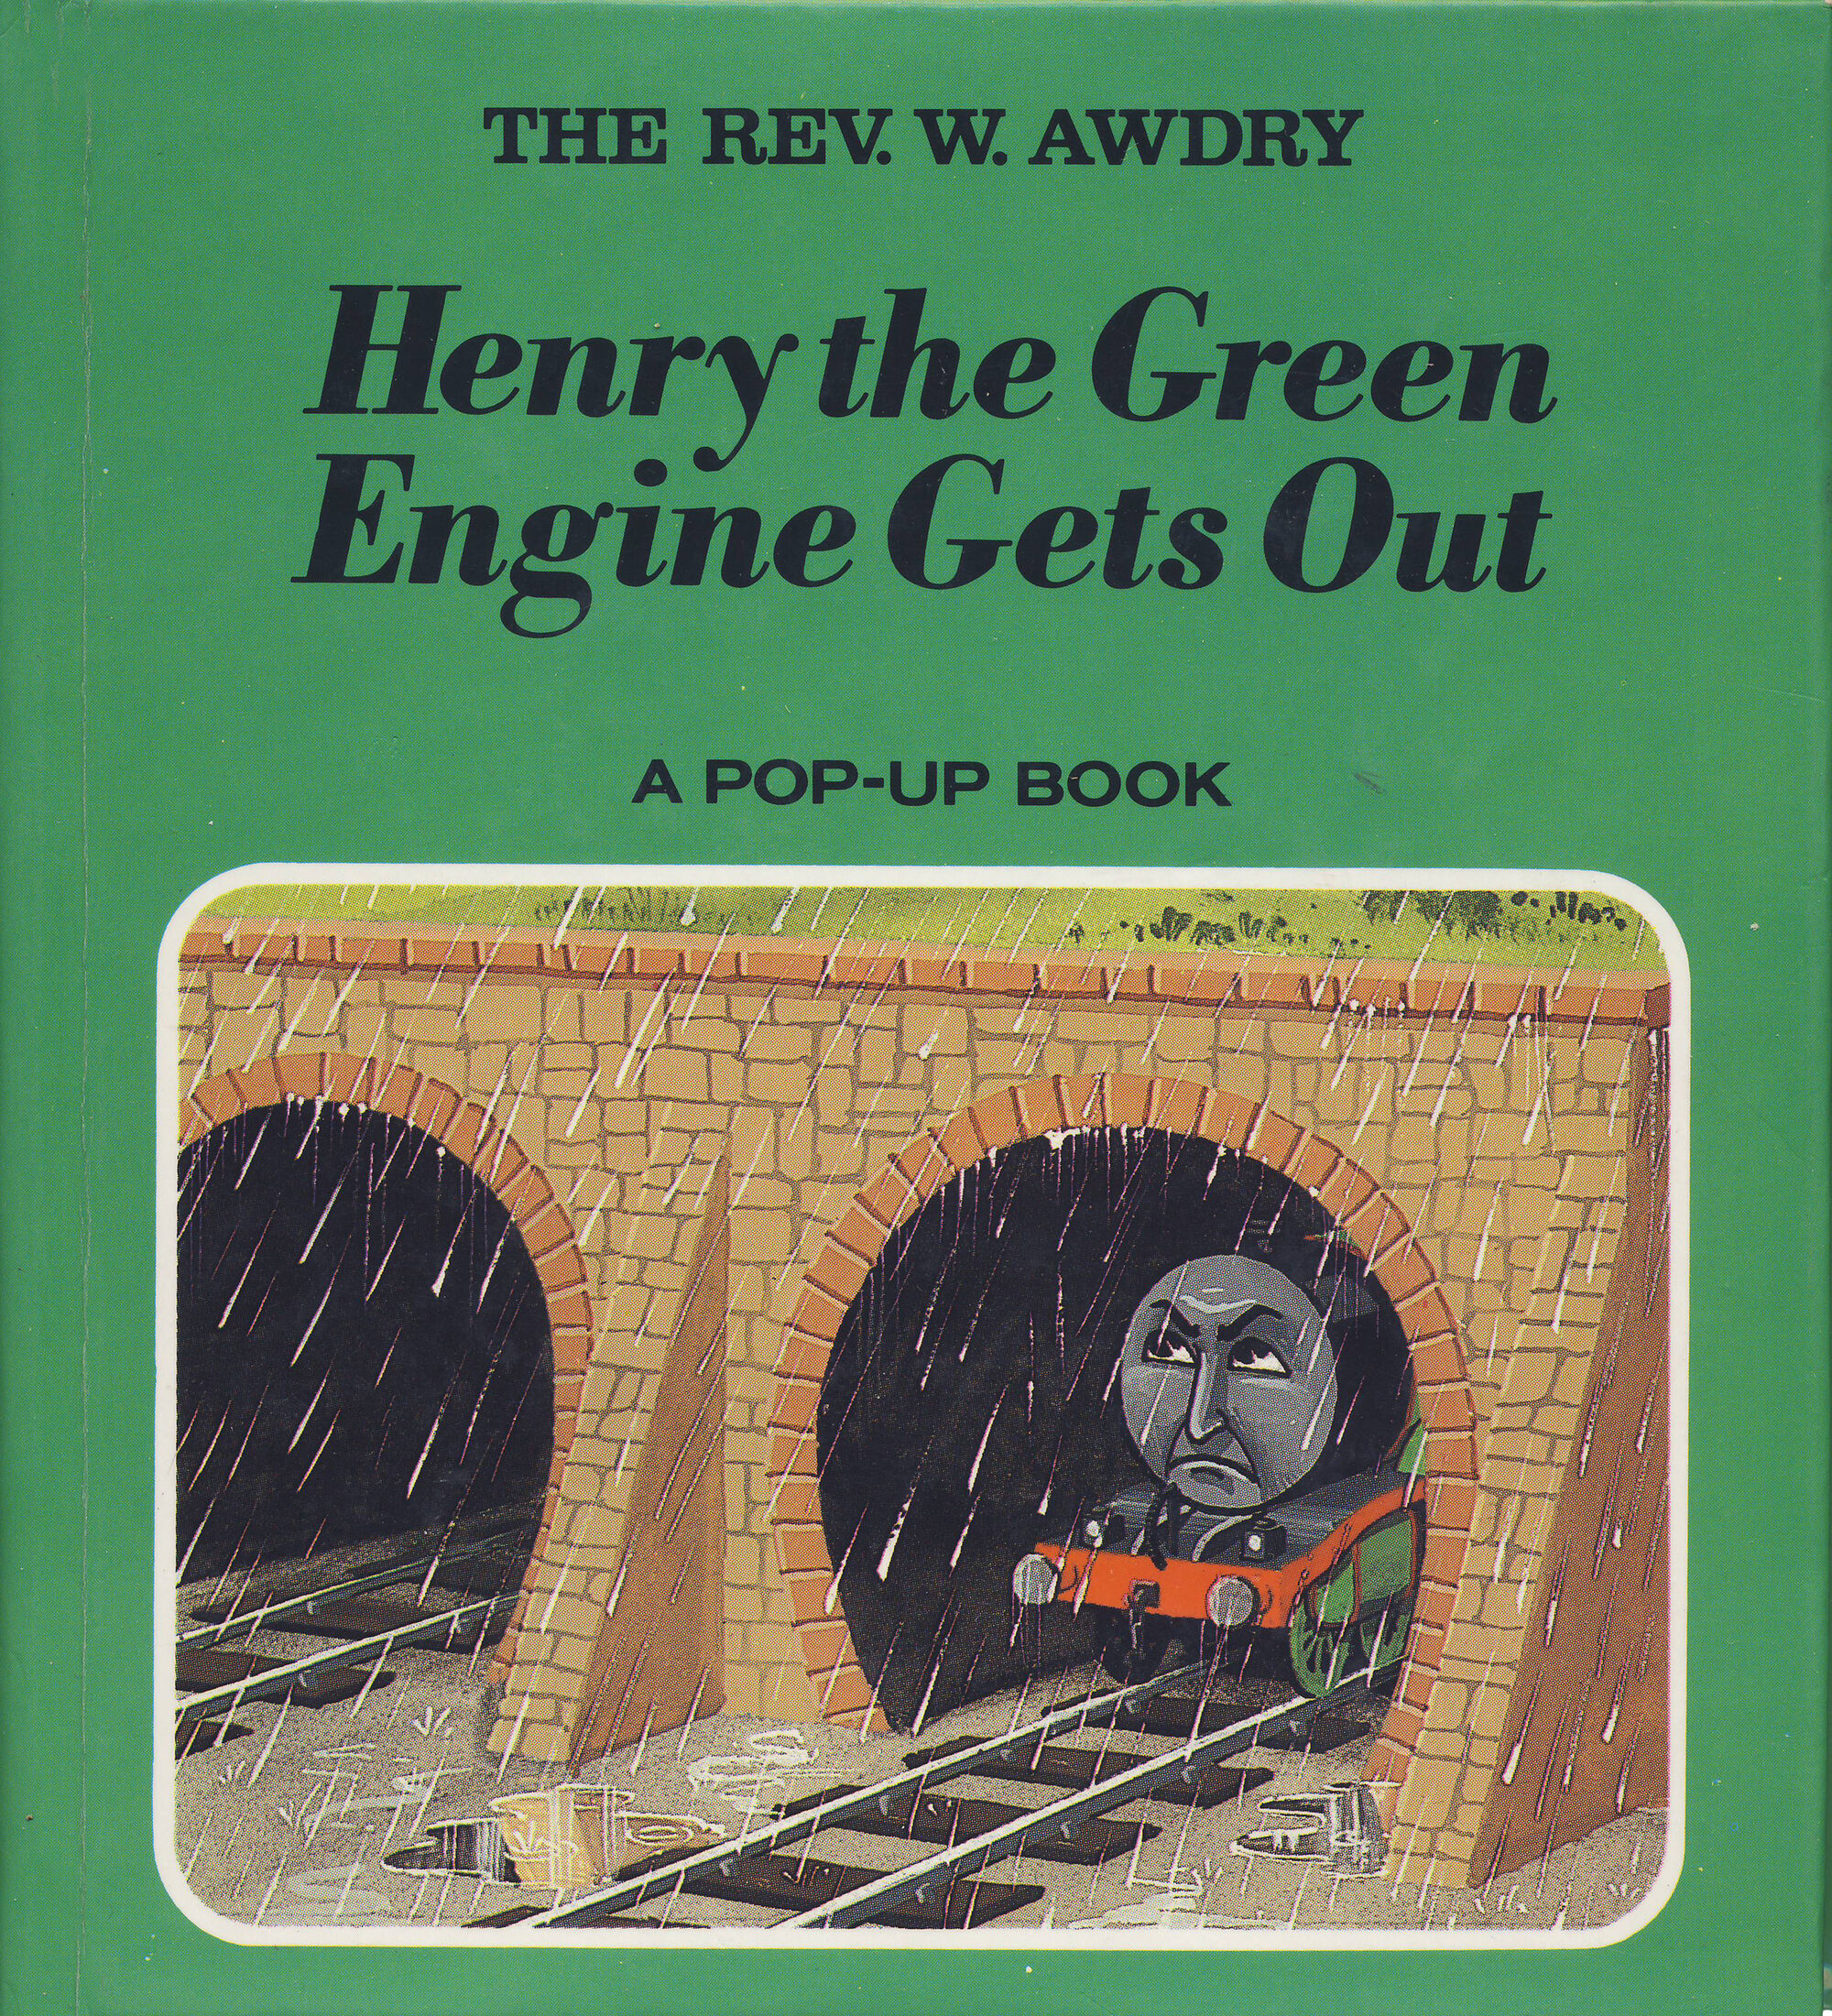 Henry the Green Engine Gets Out | Thomas the Tank Engine Wikia | FANDOM powered by Wikia